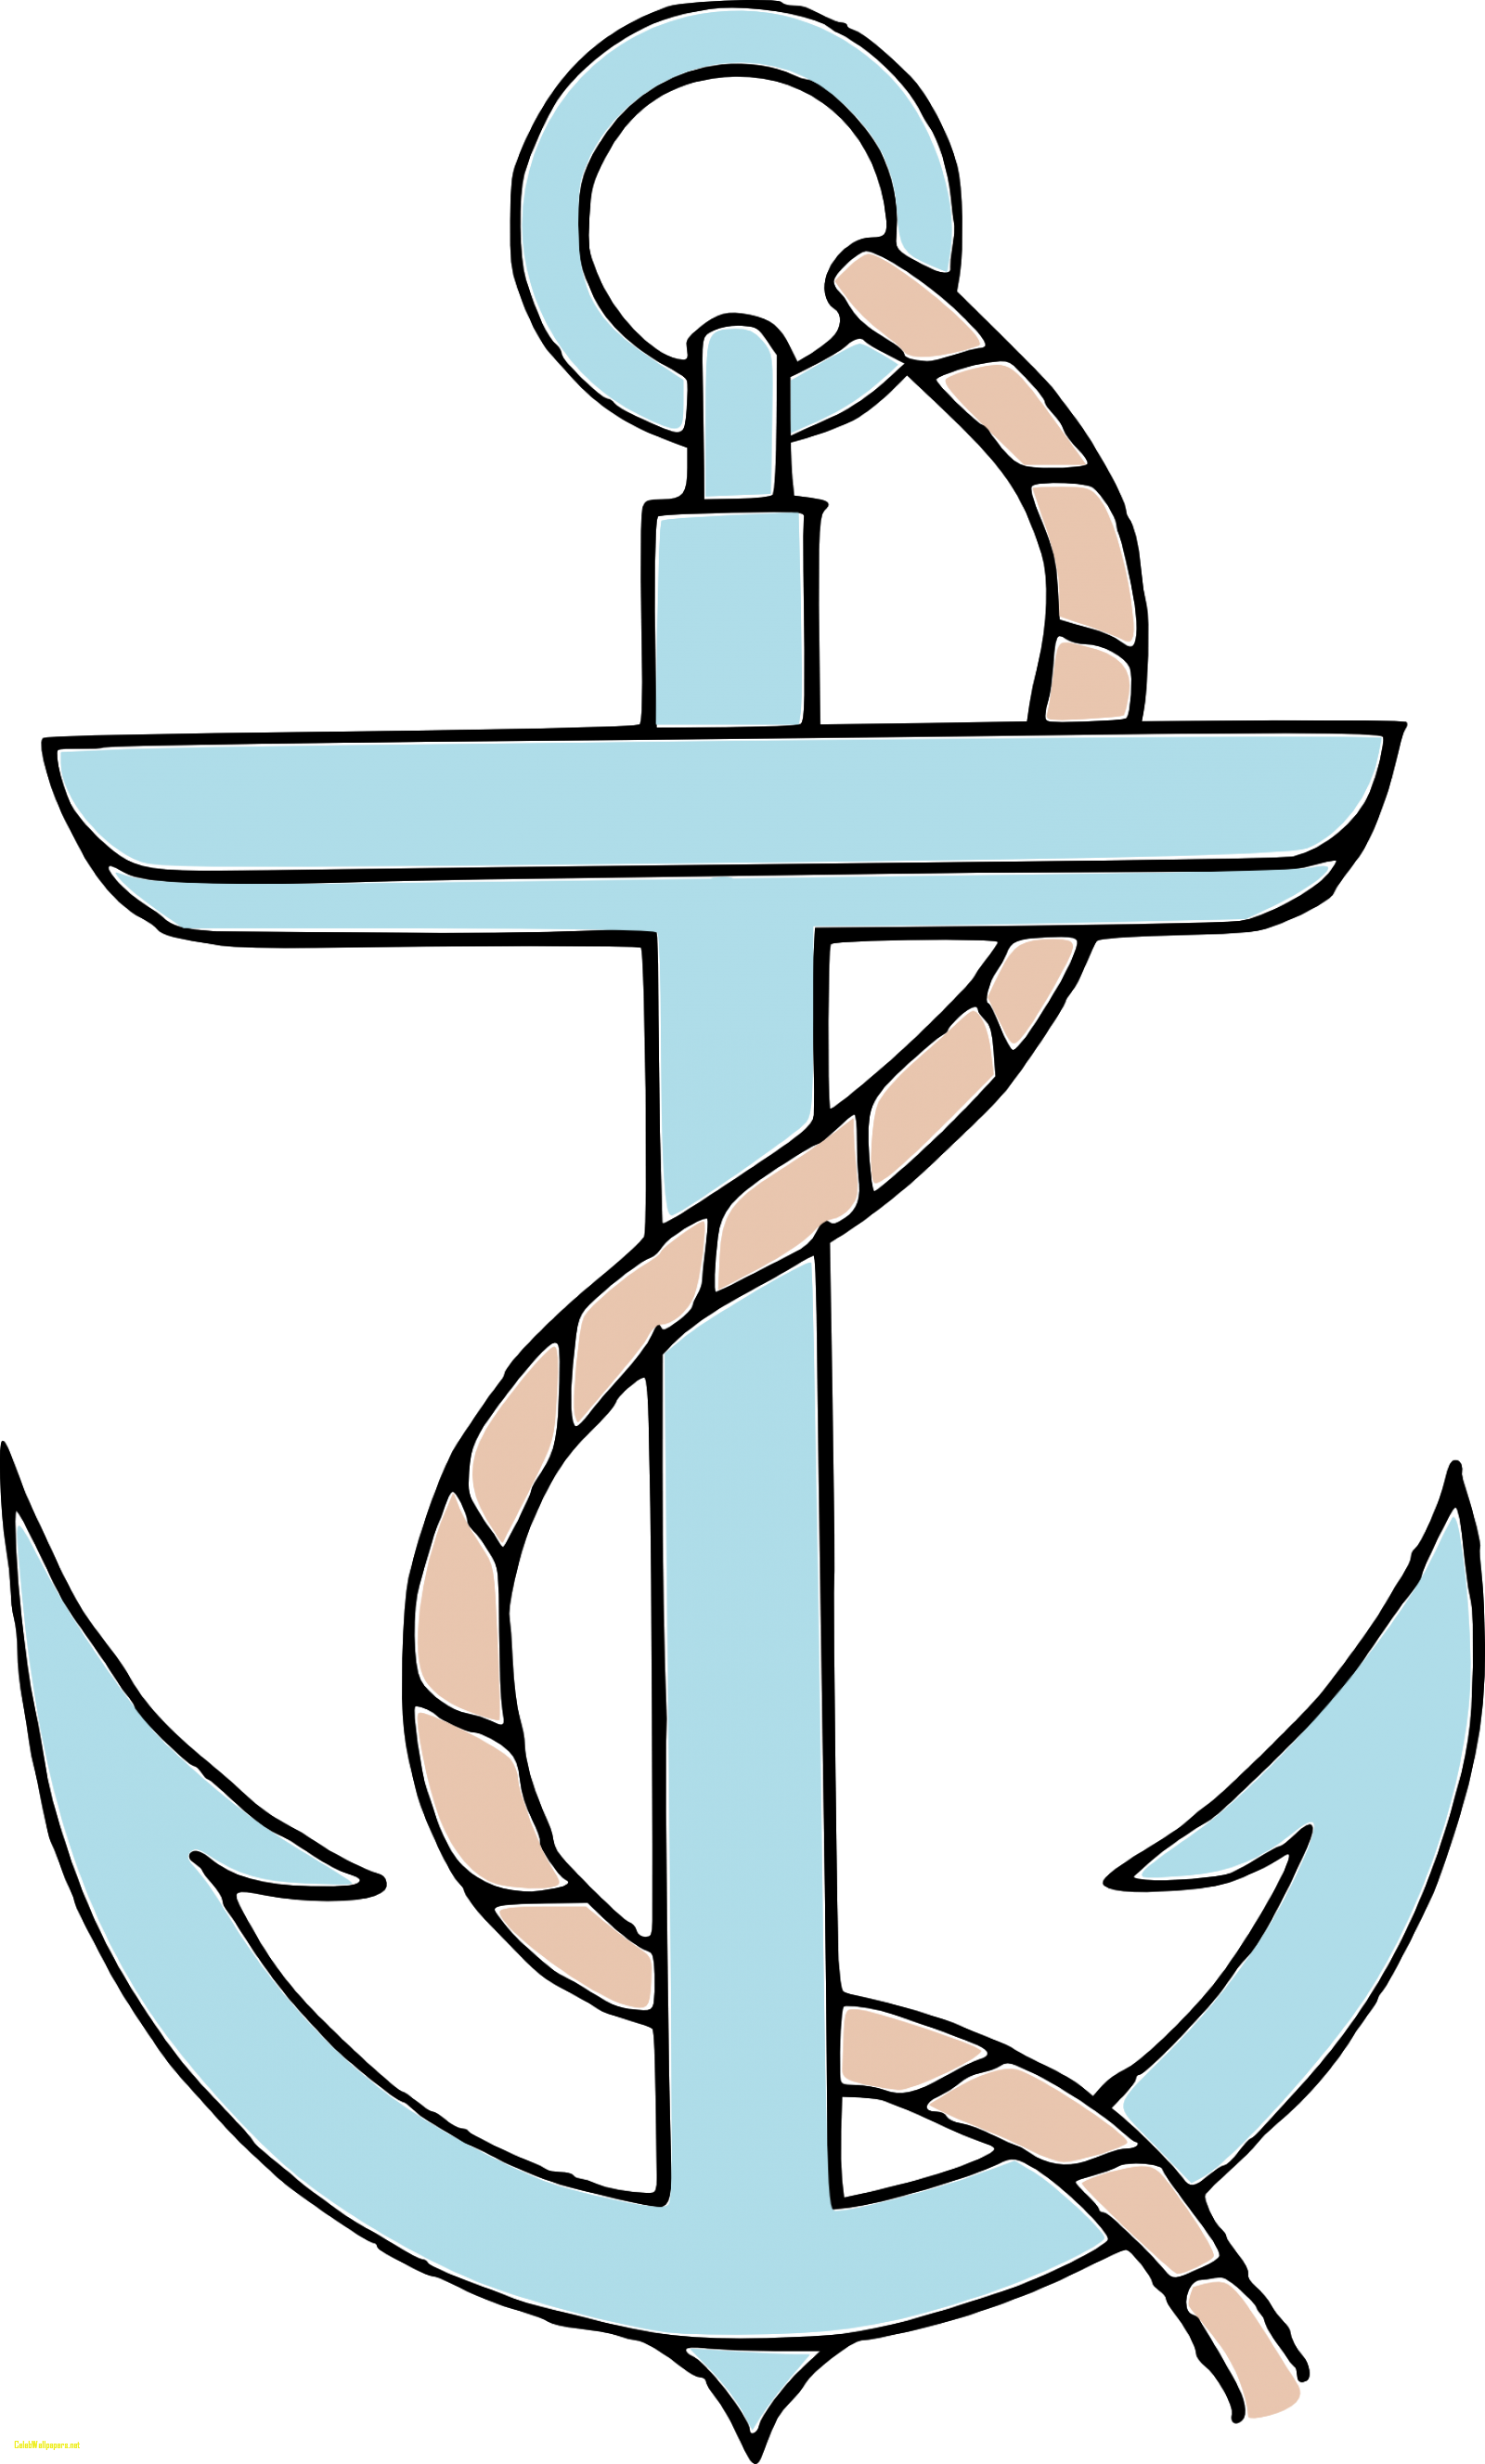 Anchor clip art png. Clipart pretty free on